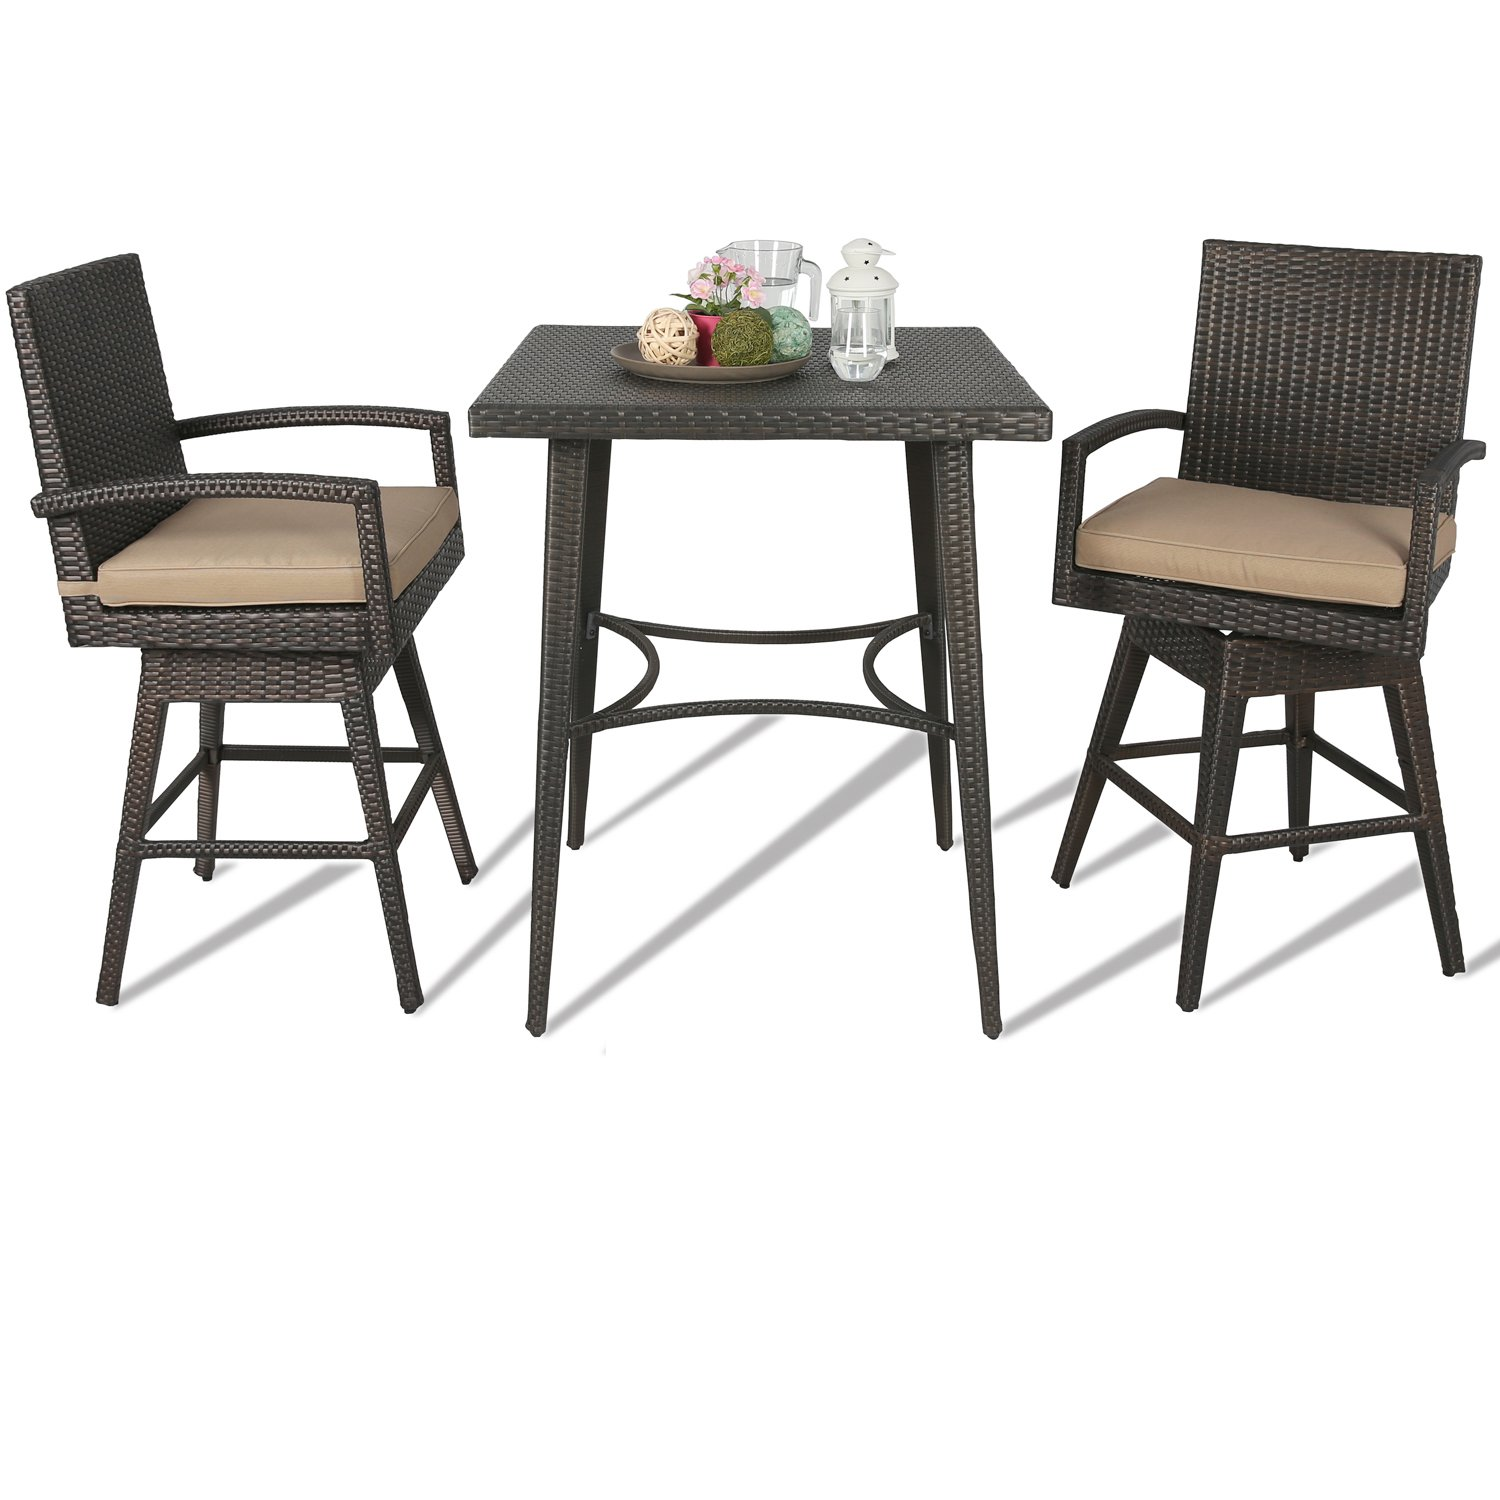 Ulax Furniture Outdoor Patio Wicker Bar Set with Cushioned Swivel Stools, Bar Table x 1, Stool x 2 3Pcs Set